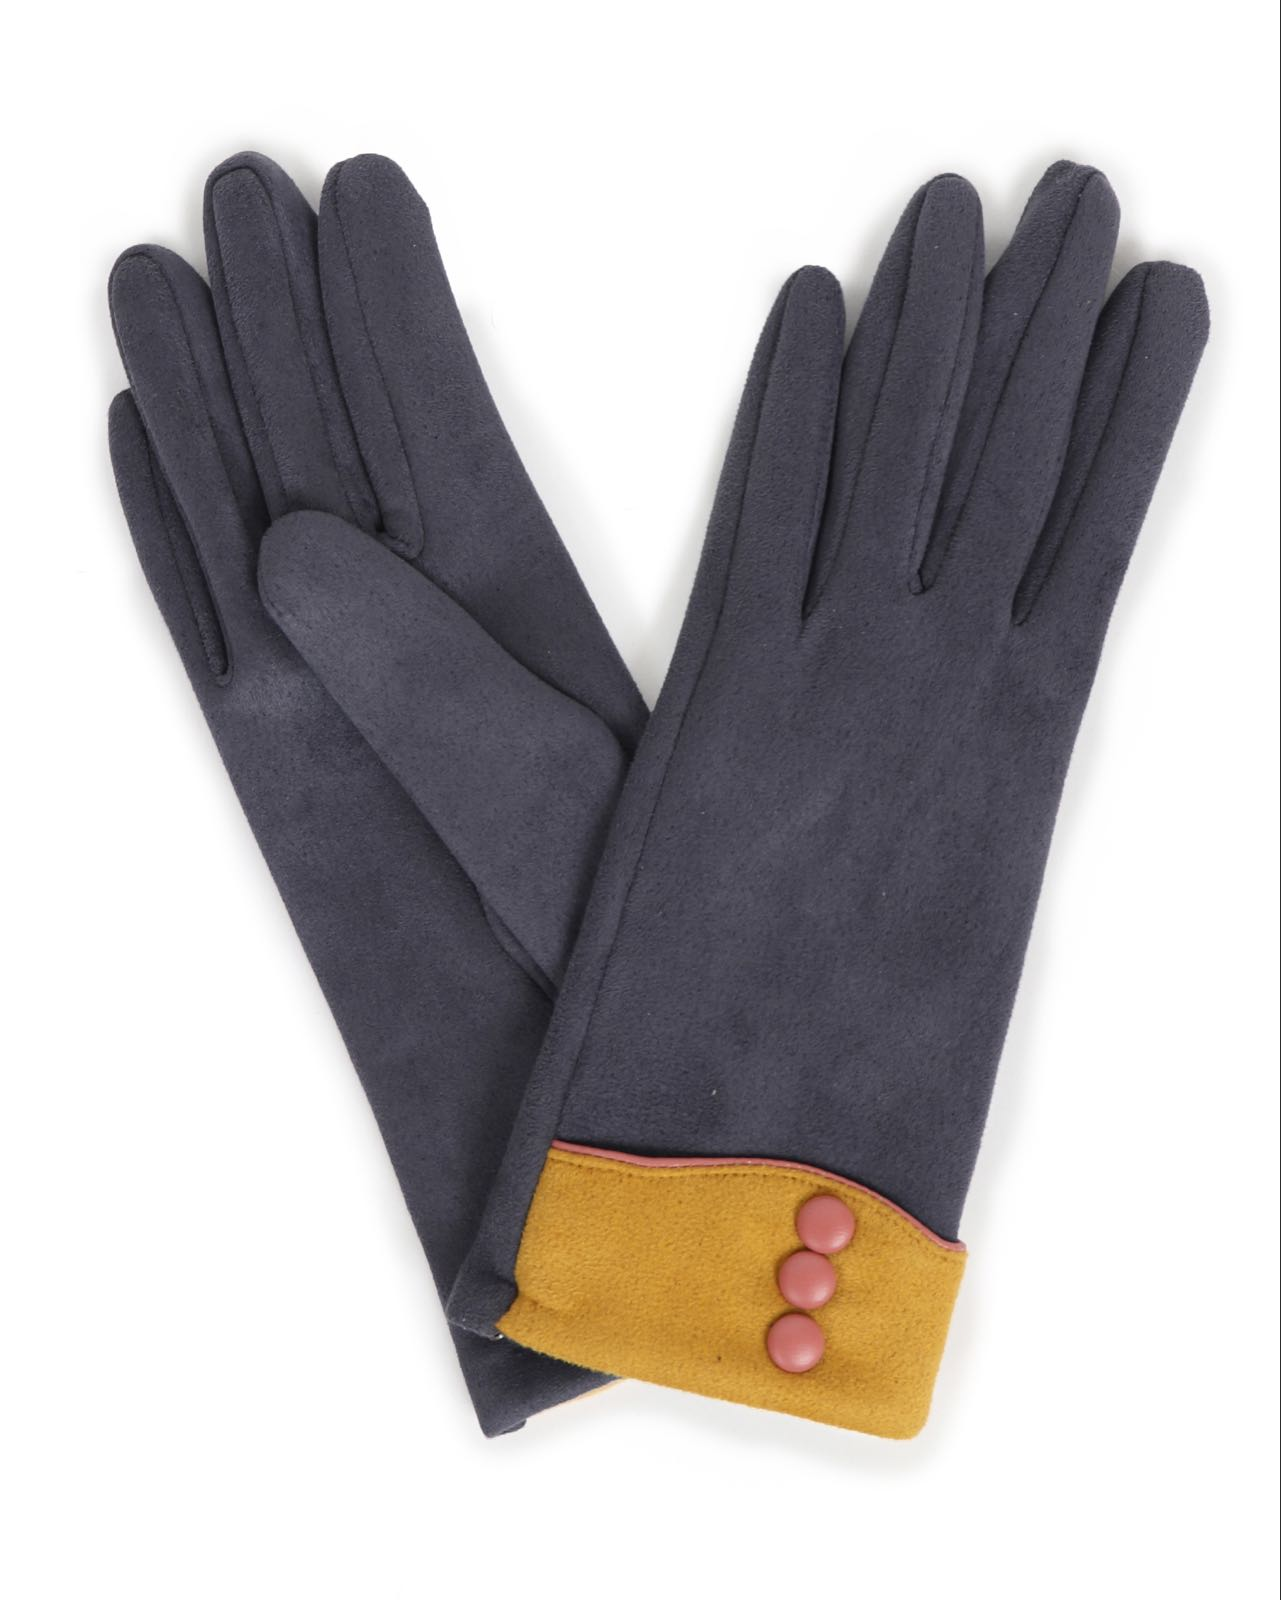 Powder Cassie faux suede gloves in charcoal